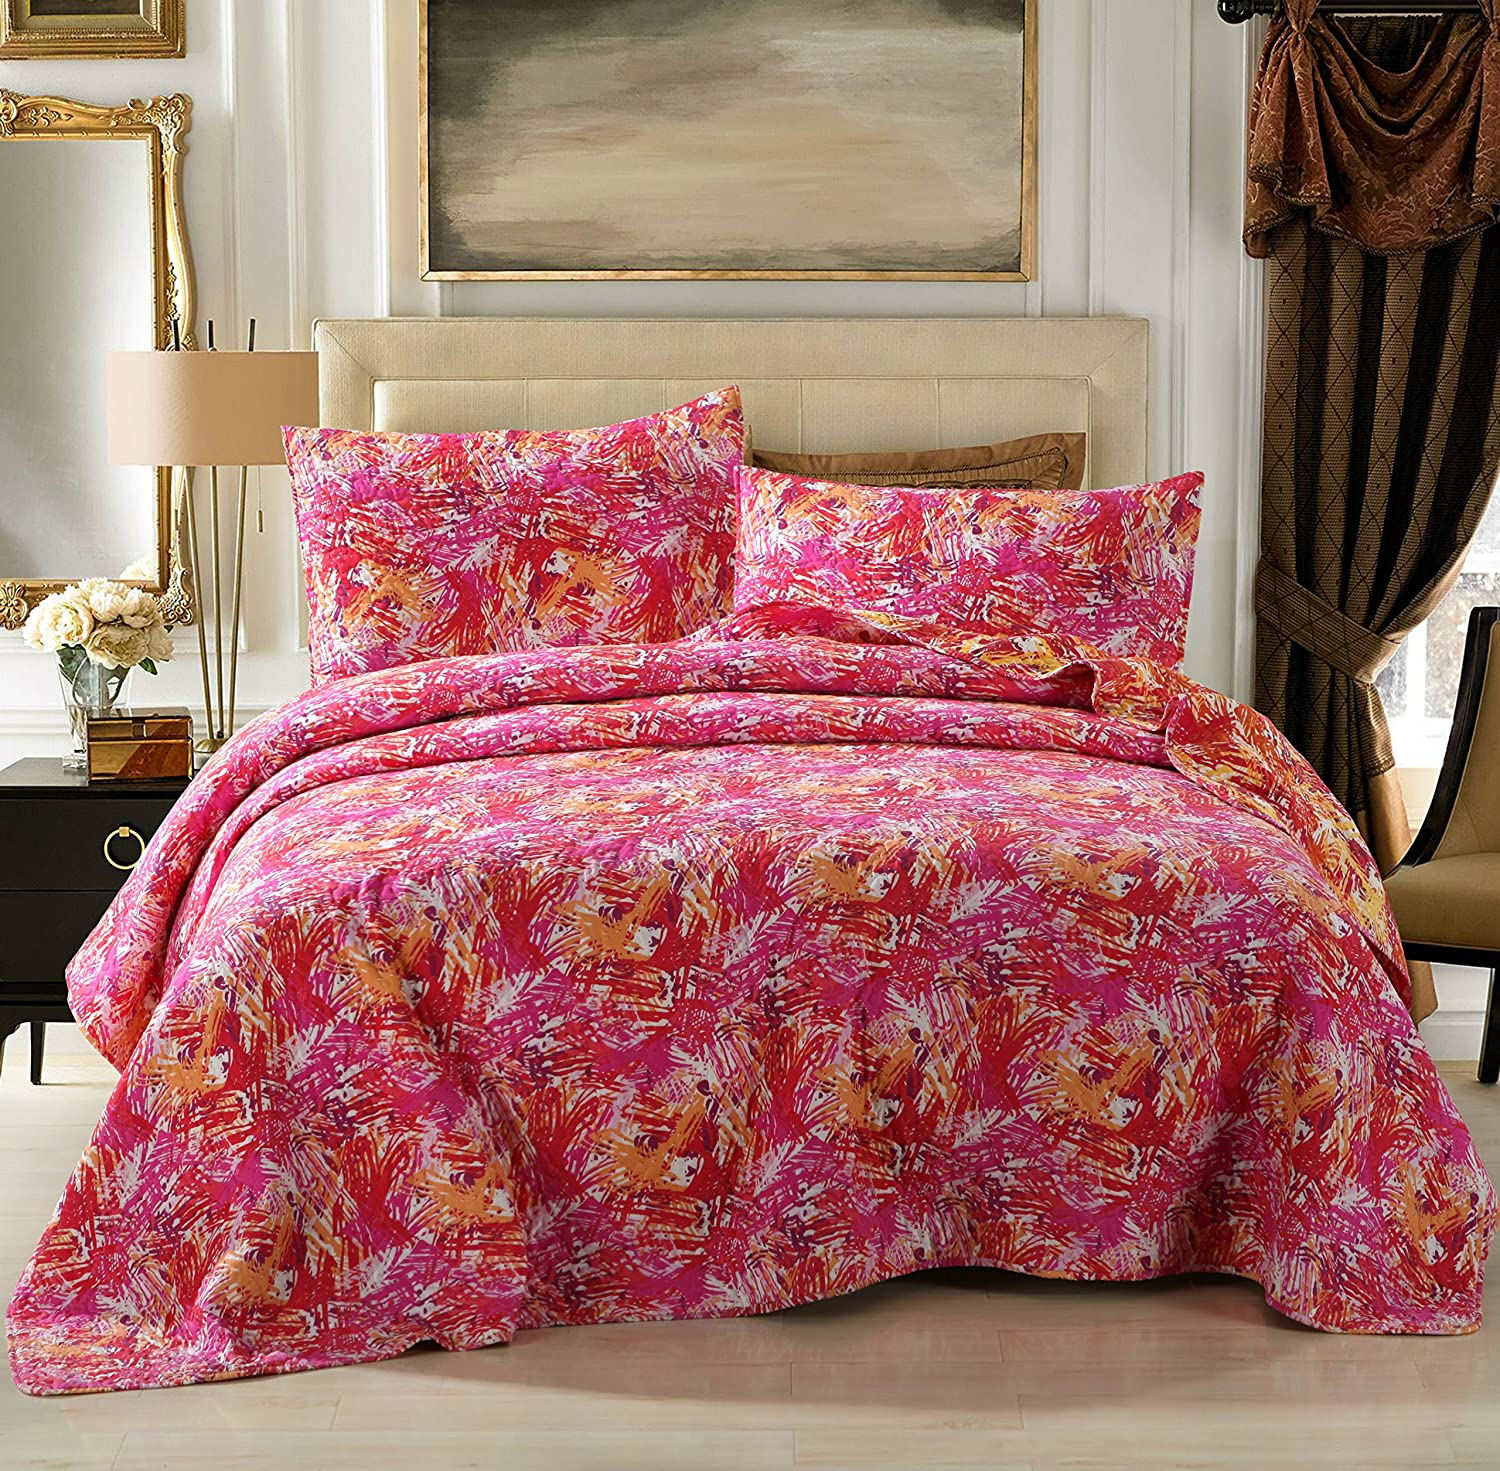 DaDa Bedding Hawaiian Breeze Reversible Quilted Coverlet Bedspread Set